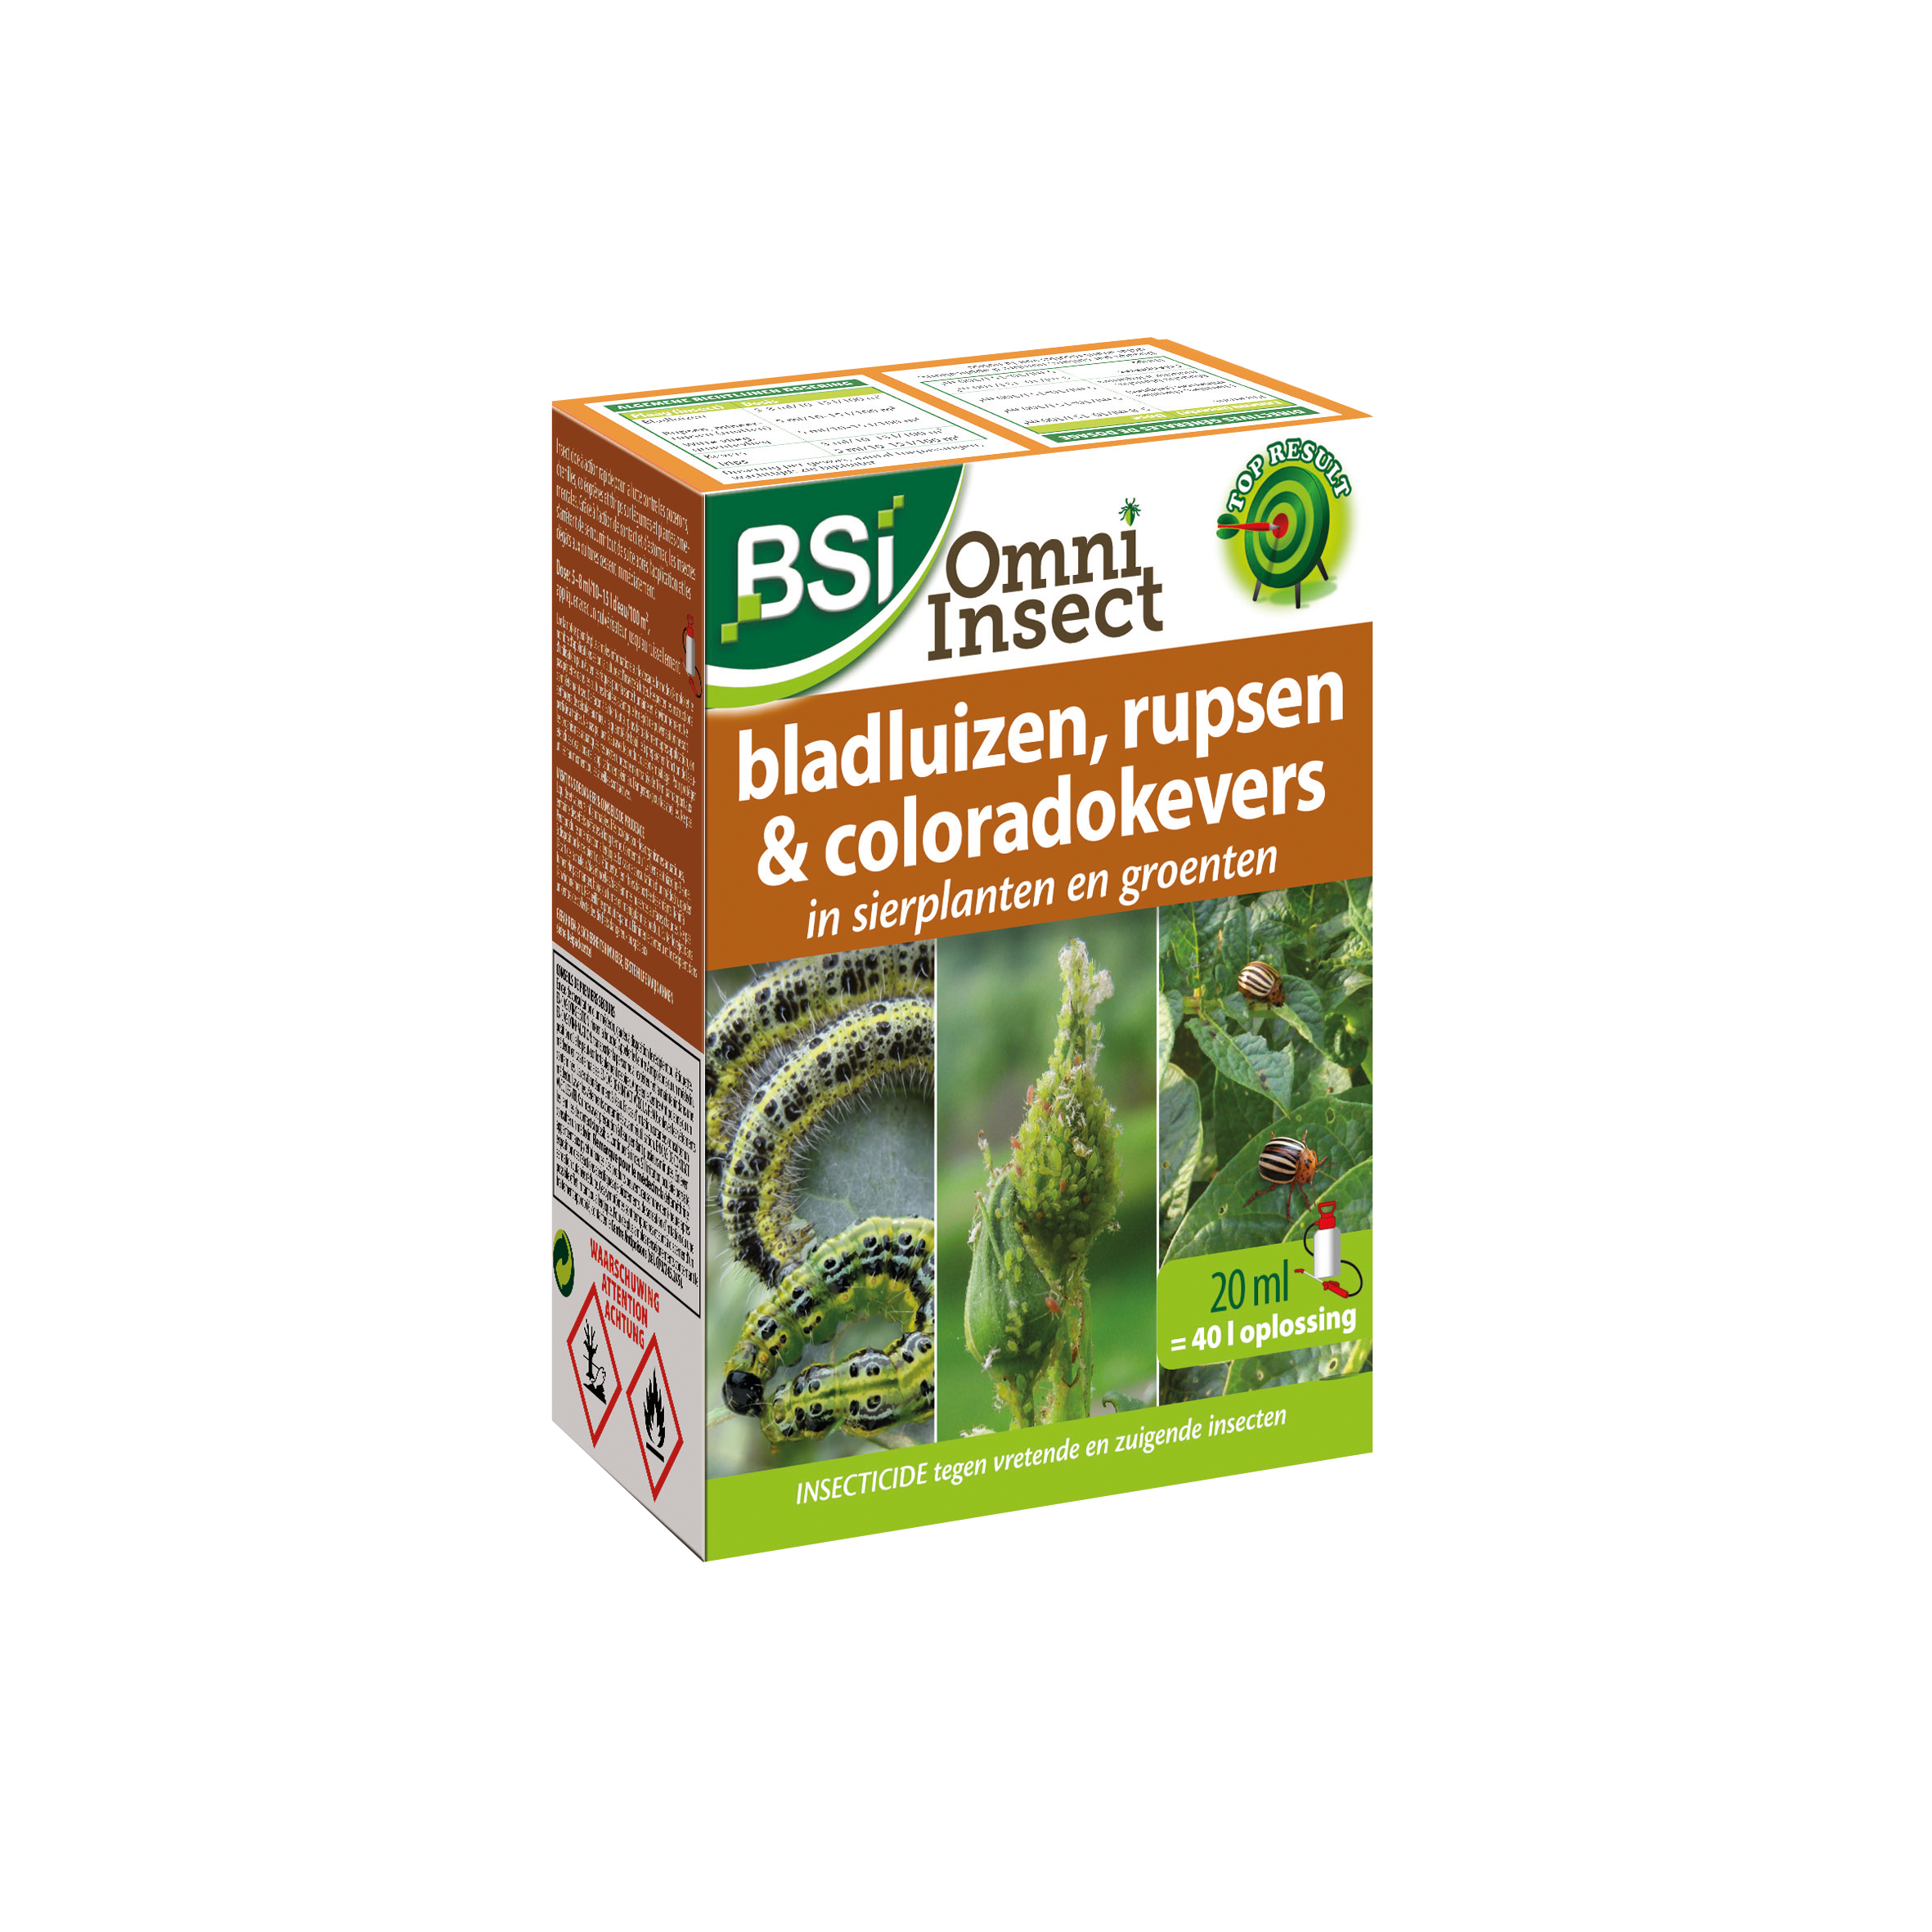 BSI Omni Insect BE 20 ml (1185G/P) image